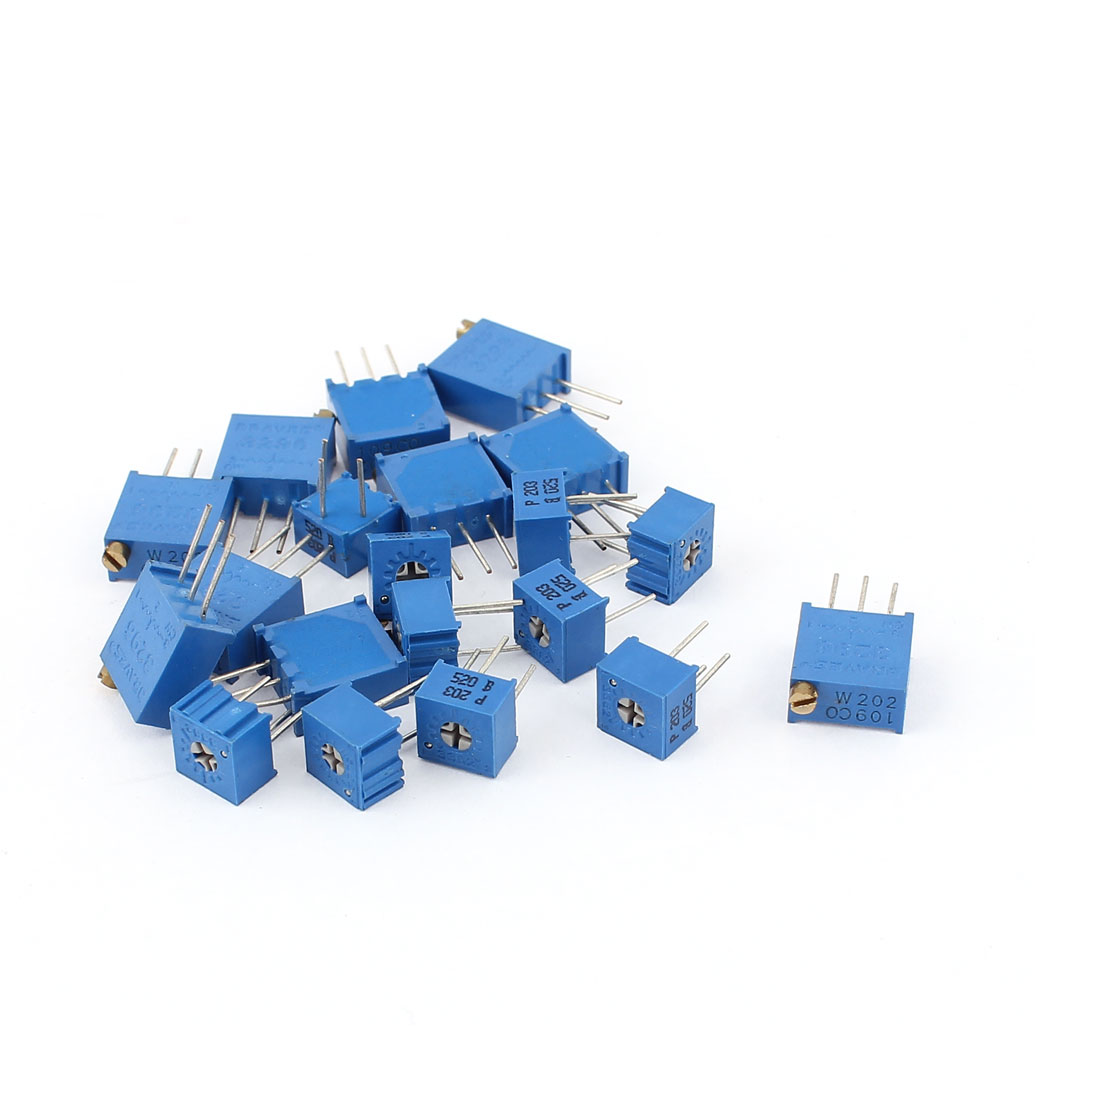 10Pcs Adjustable Potentiometer Trimmer Variable Resistor 3362P-203